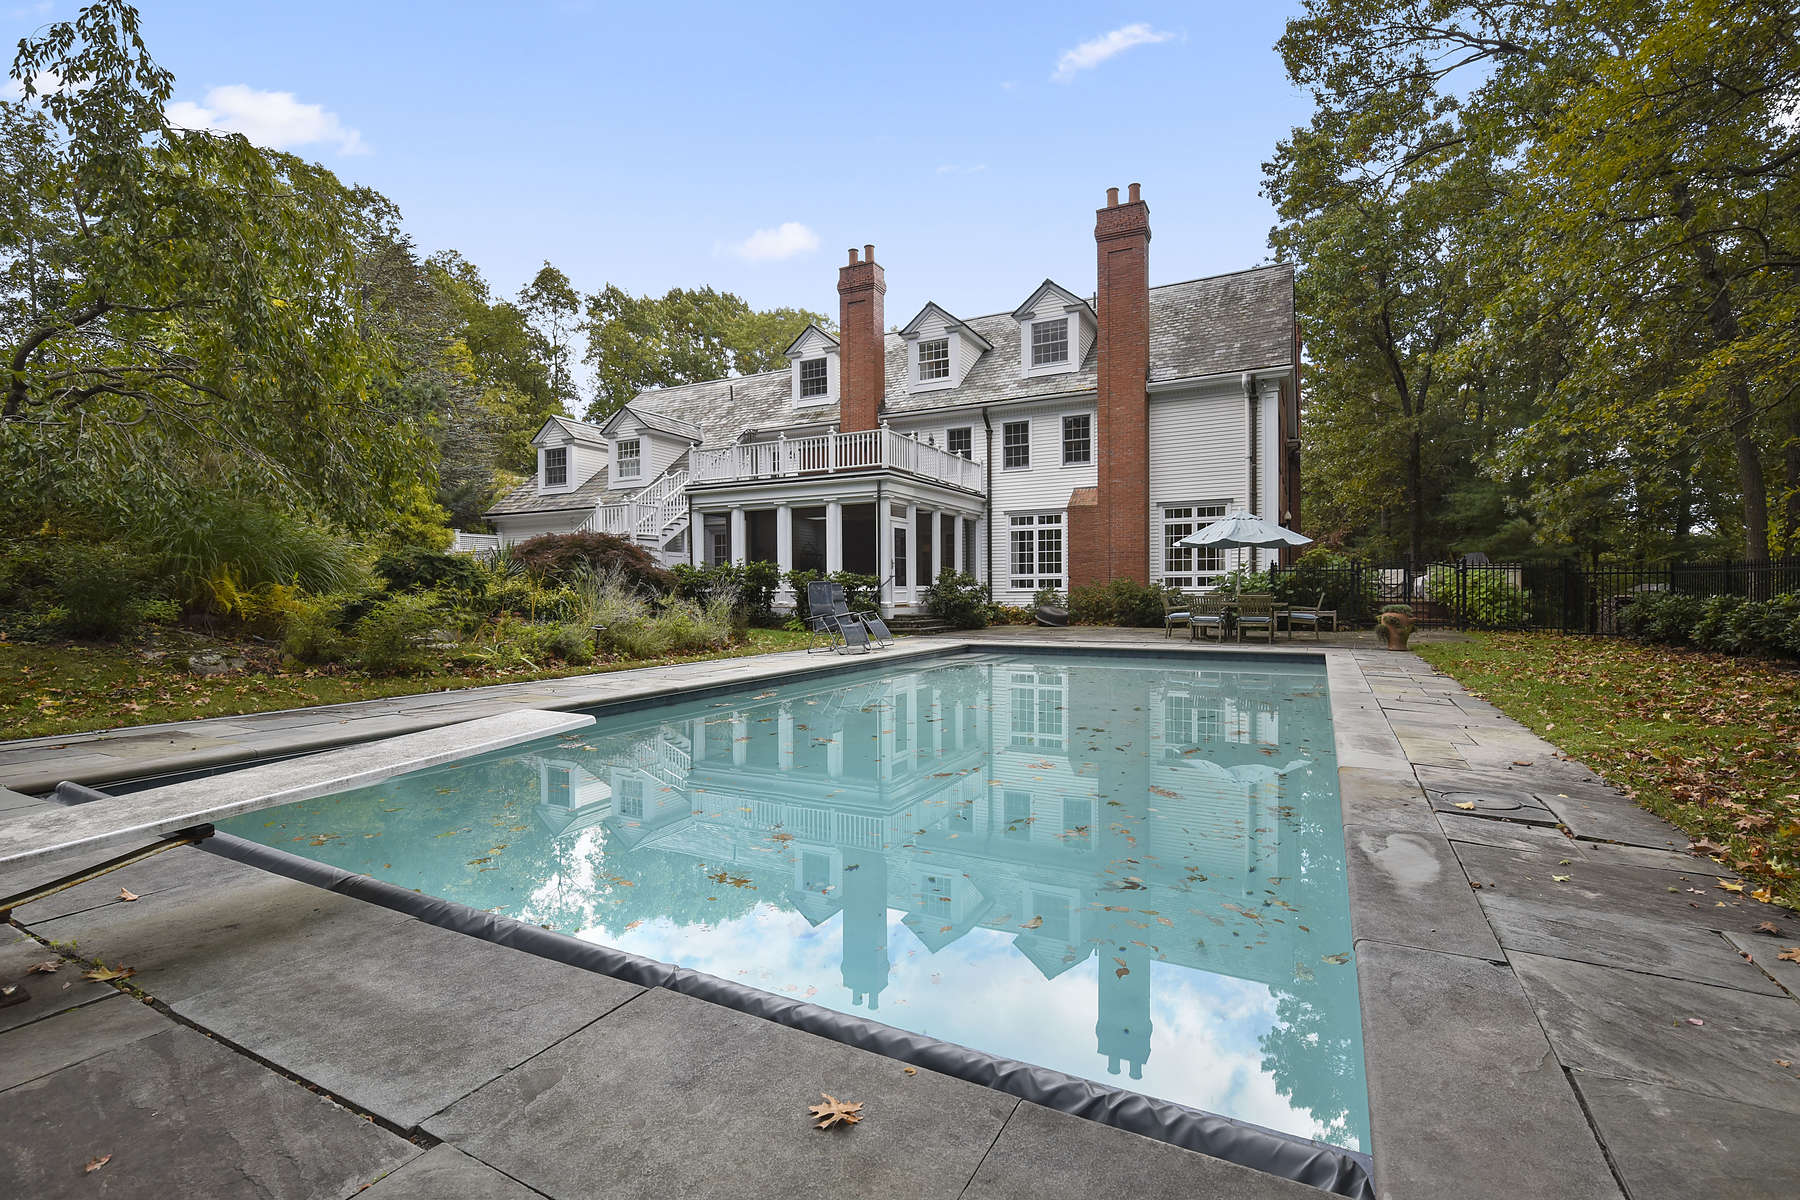 Single Family Home for Active at Enviable Estate By The Preeminent And Exclusive Builders, Thoughtforms 1 Sunset Ridge Lexington, Massachusetts 02421 United States